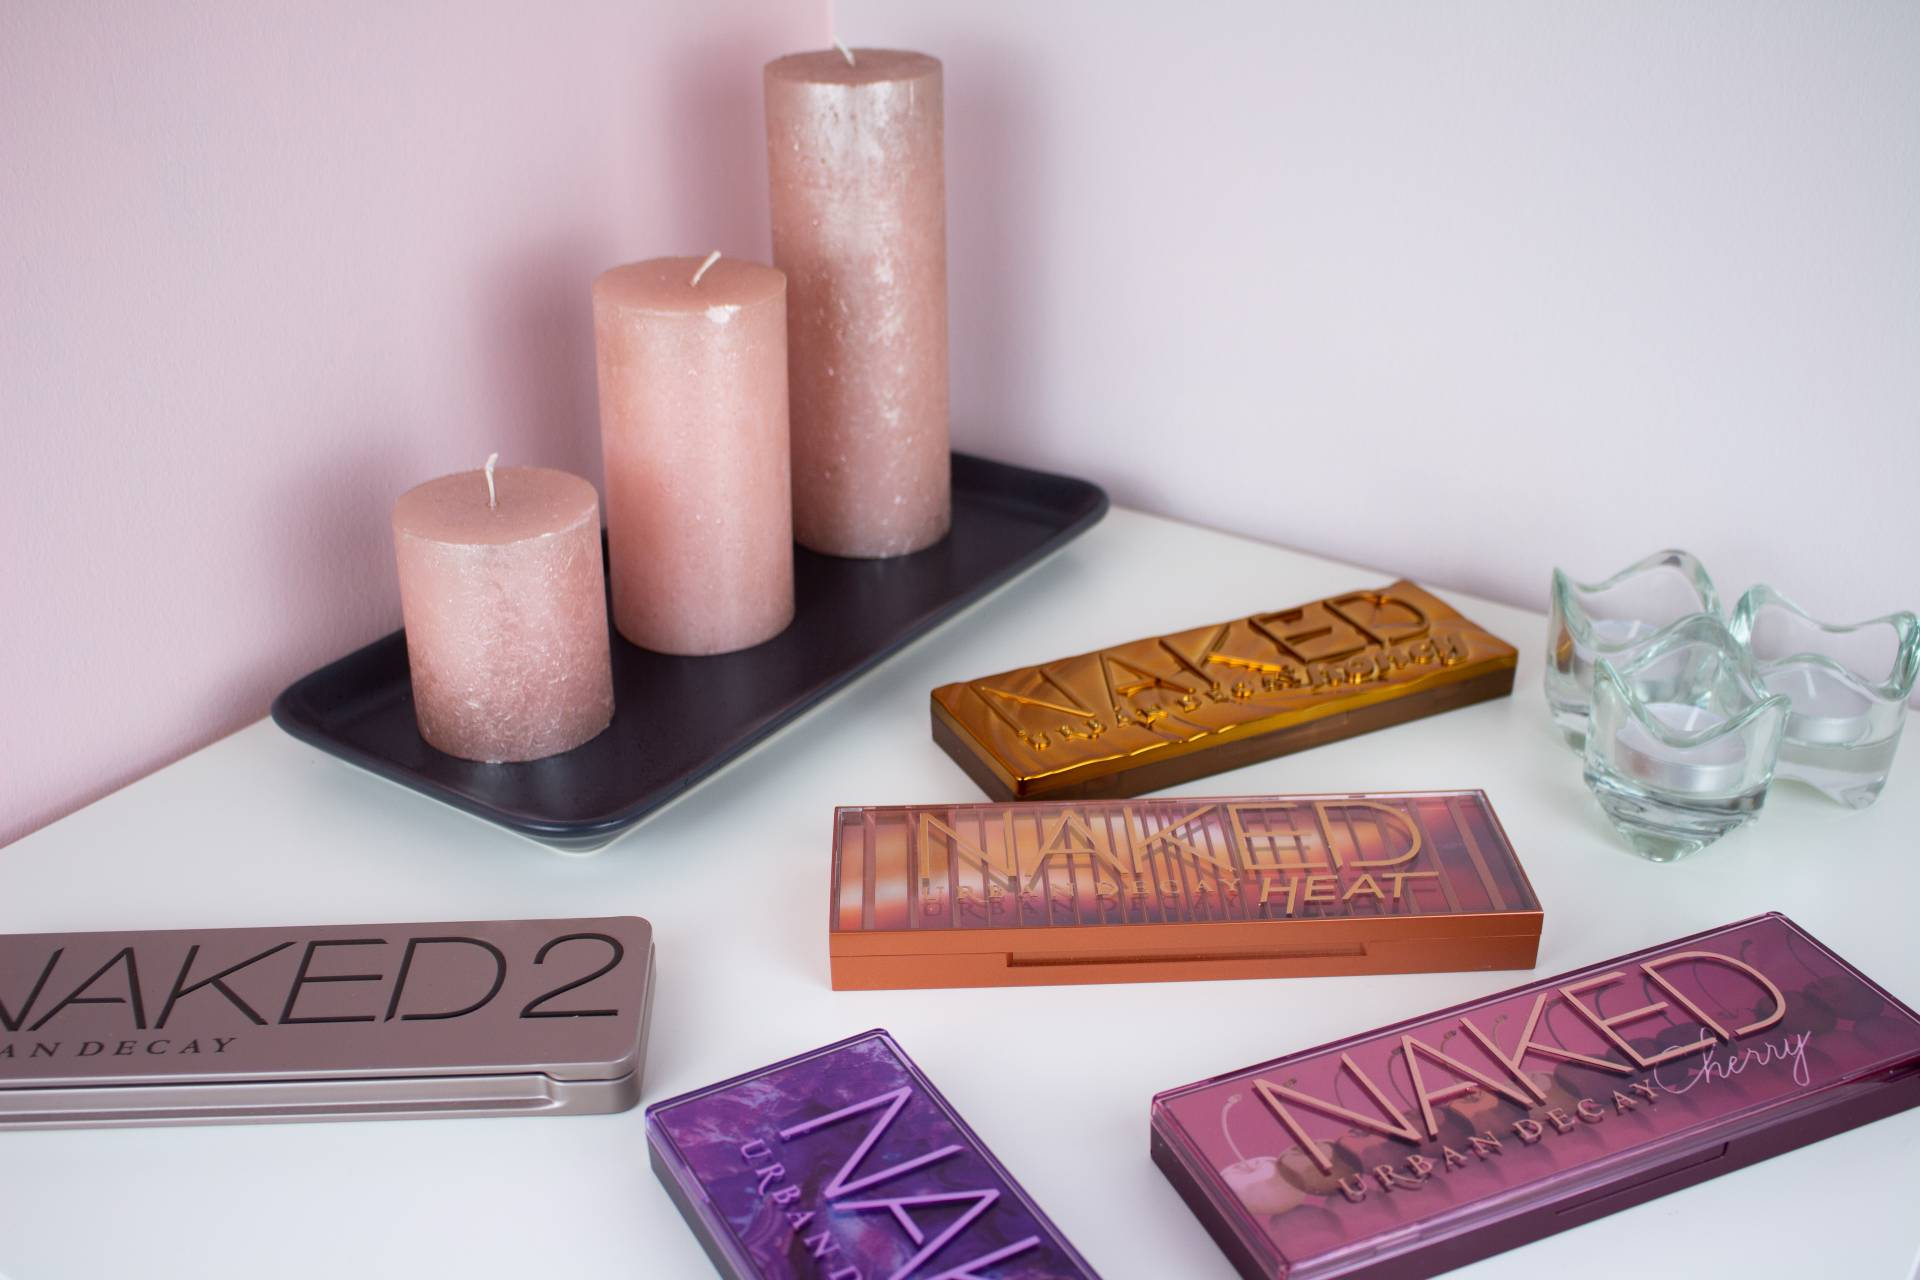 urban decay palettes on table with candles